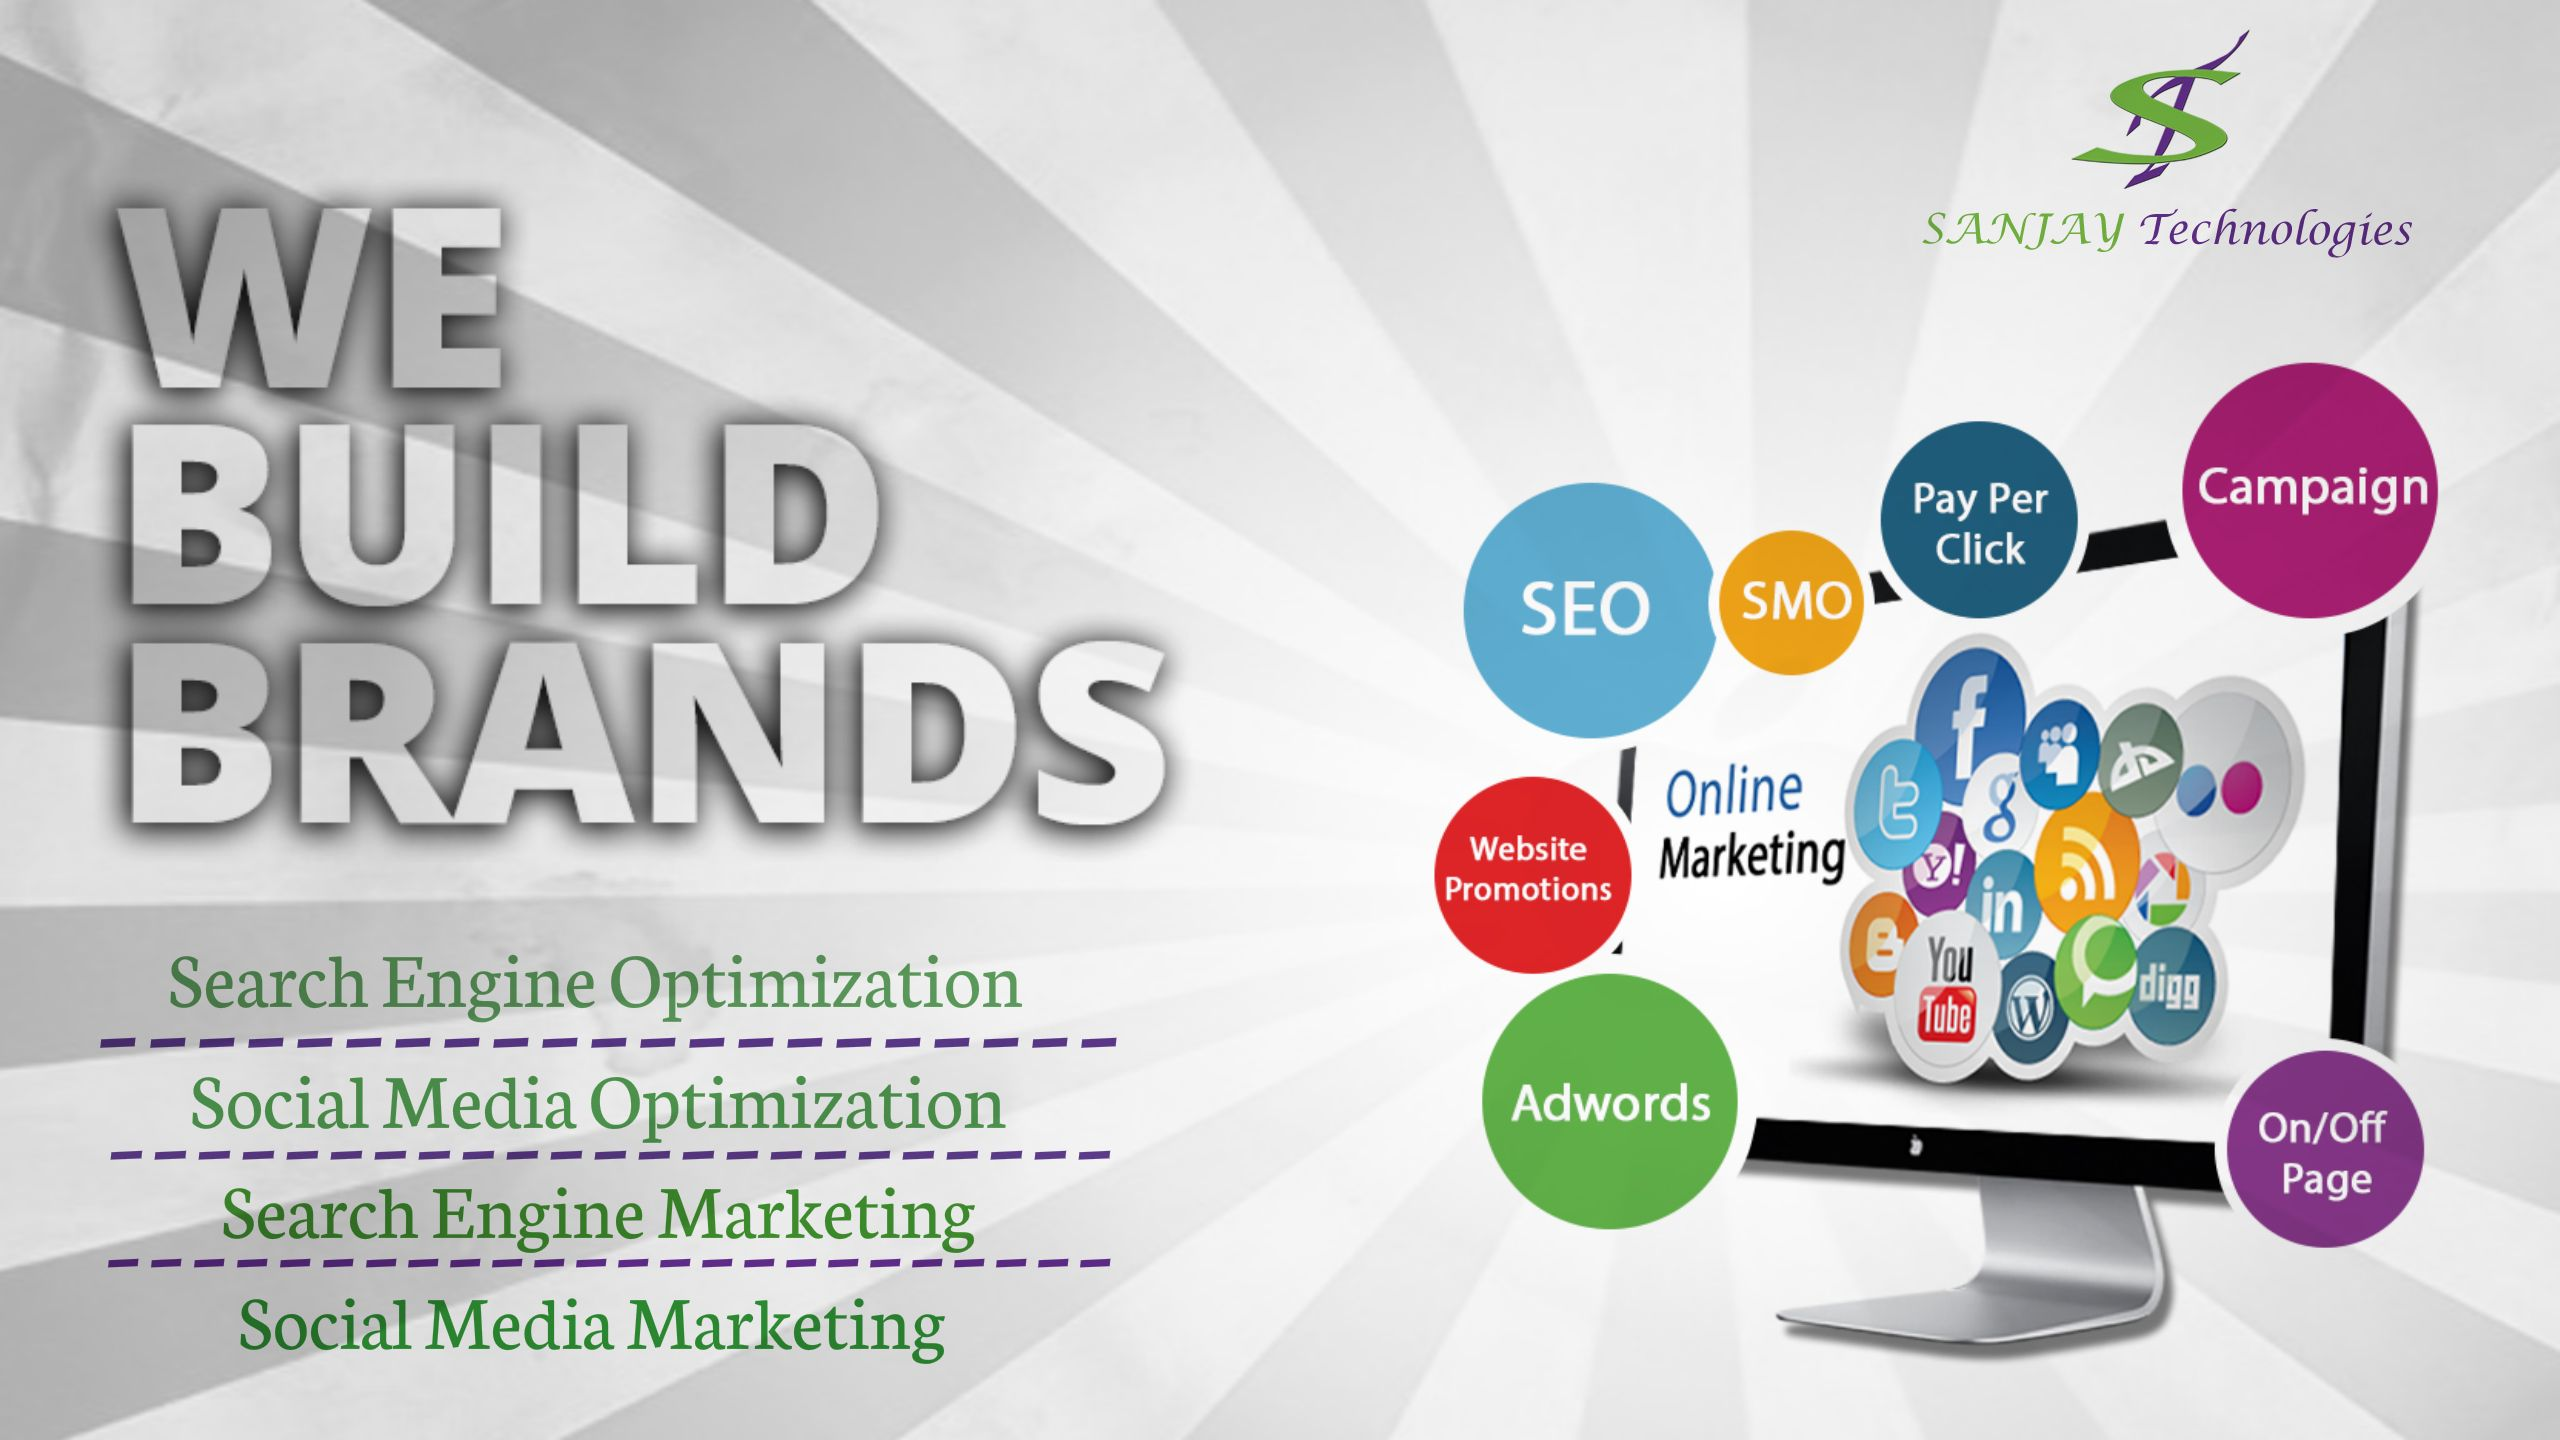 Are You Suffering In Getting Top Ranking In Search Engine Here We Build Your Brand Online Marketing Services Promotional Products Marketing Website Branding